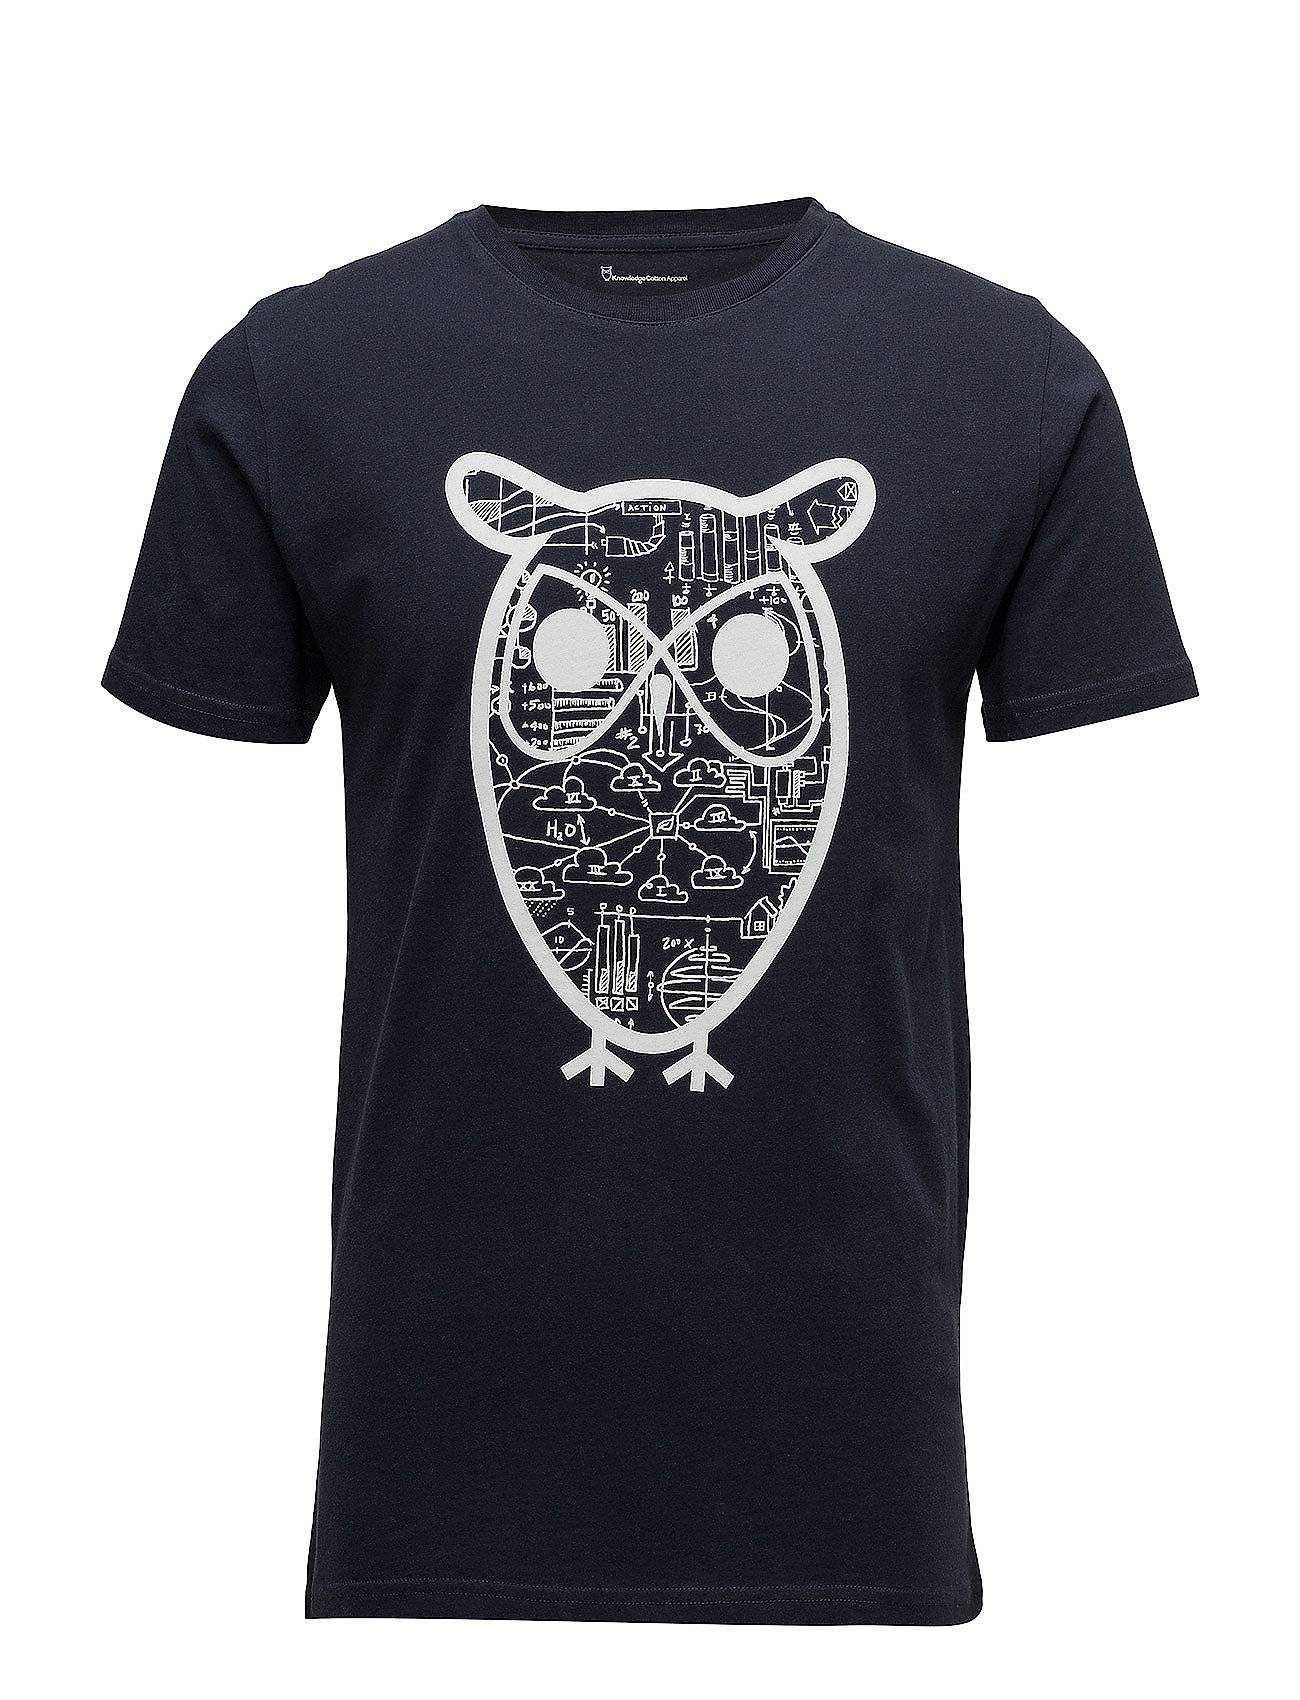 Knowledge Cotton Apparel T-Shirt With Diagram Owl Print - Go